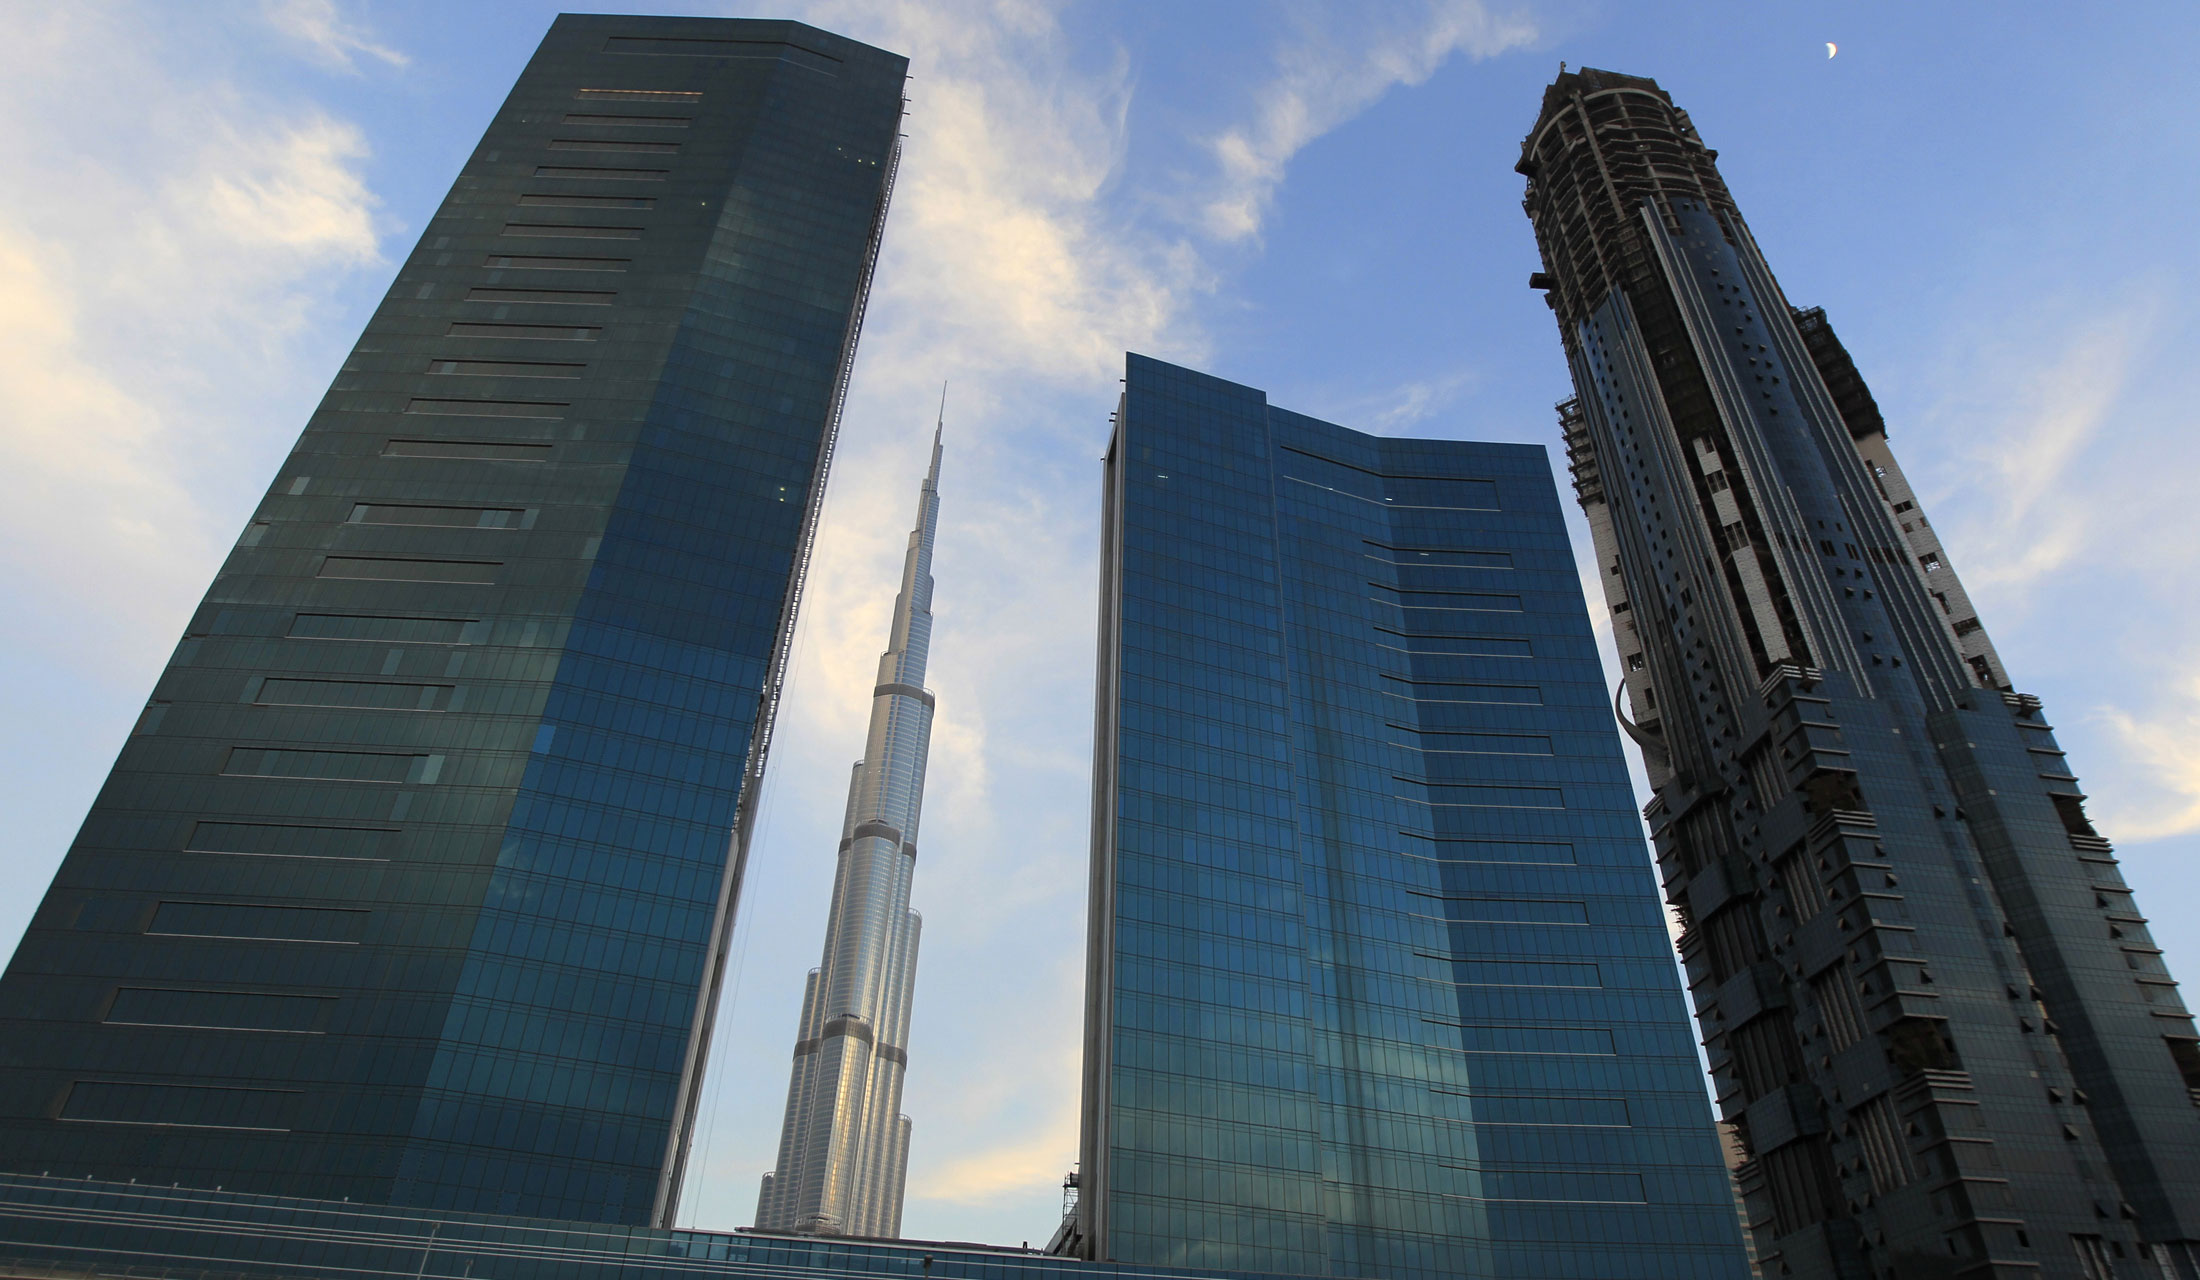 Militants from Saudi Arabia and United Arab Emirates are arrested in a joint Saudi-UAE operation, the official WAM news agency reports. The cell were reportedly planning attacks in the Arab Gulf.